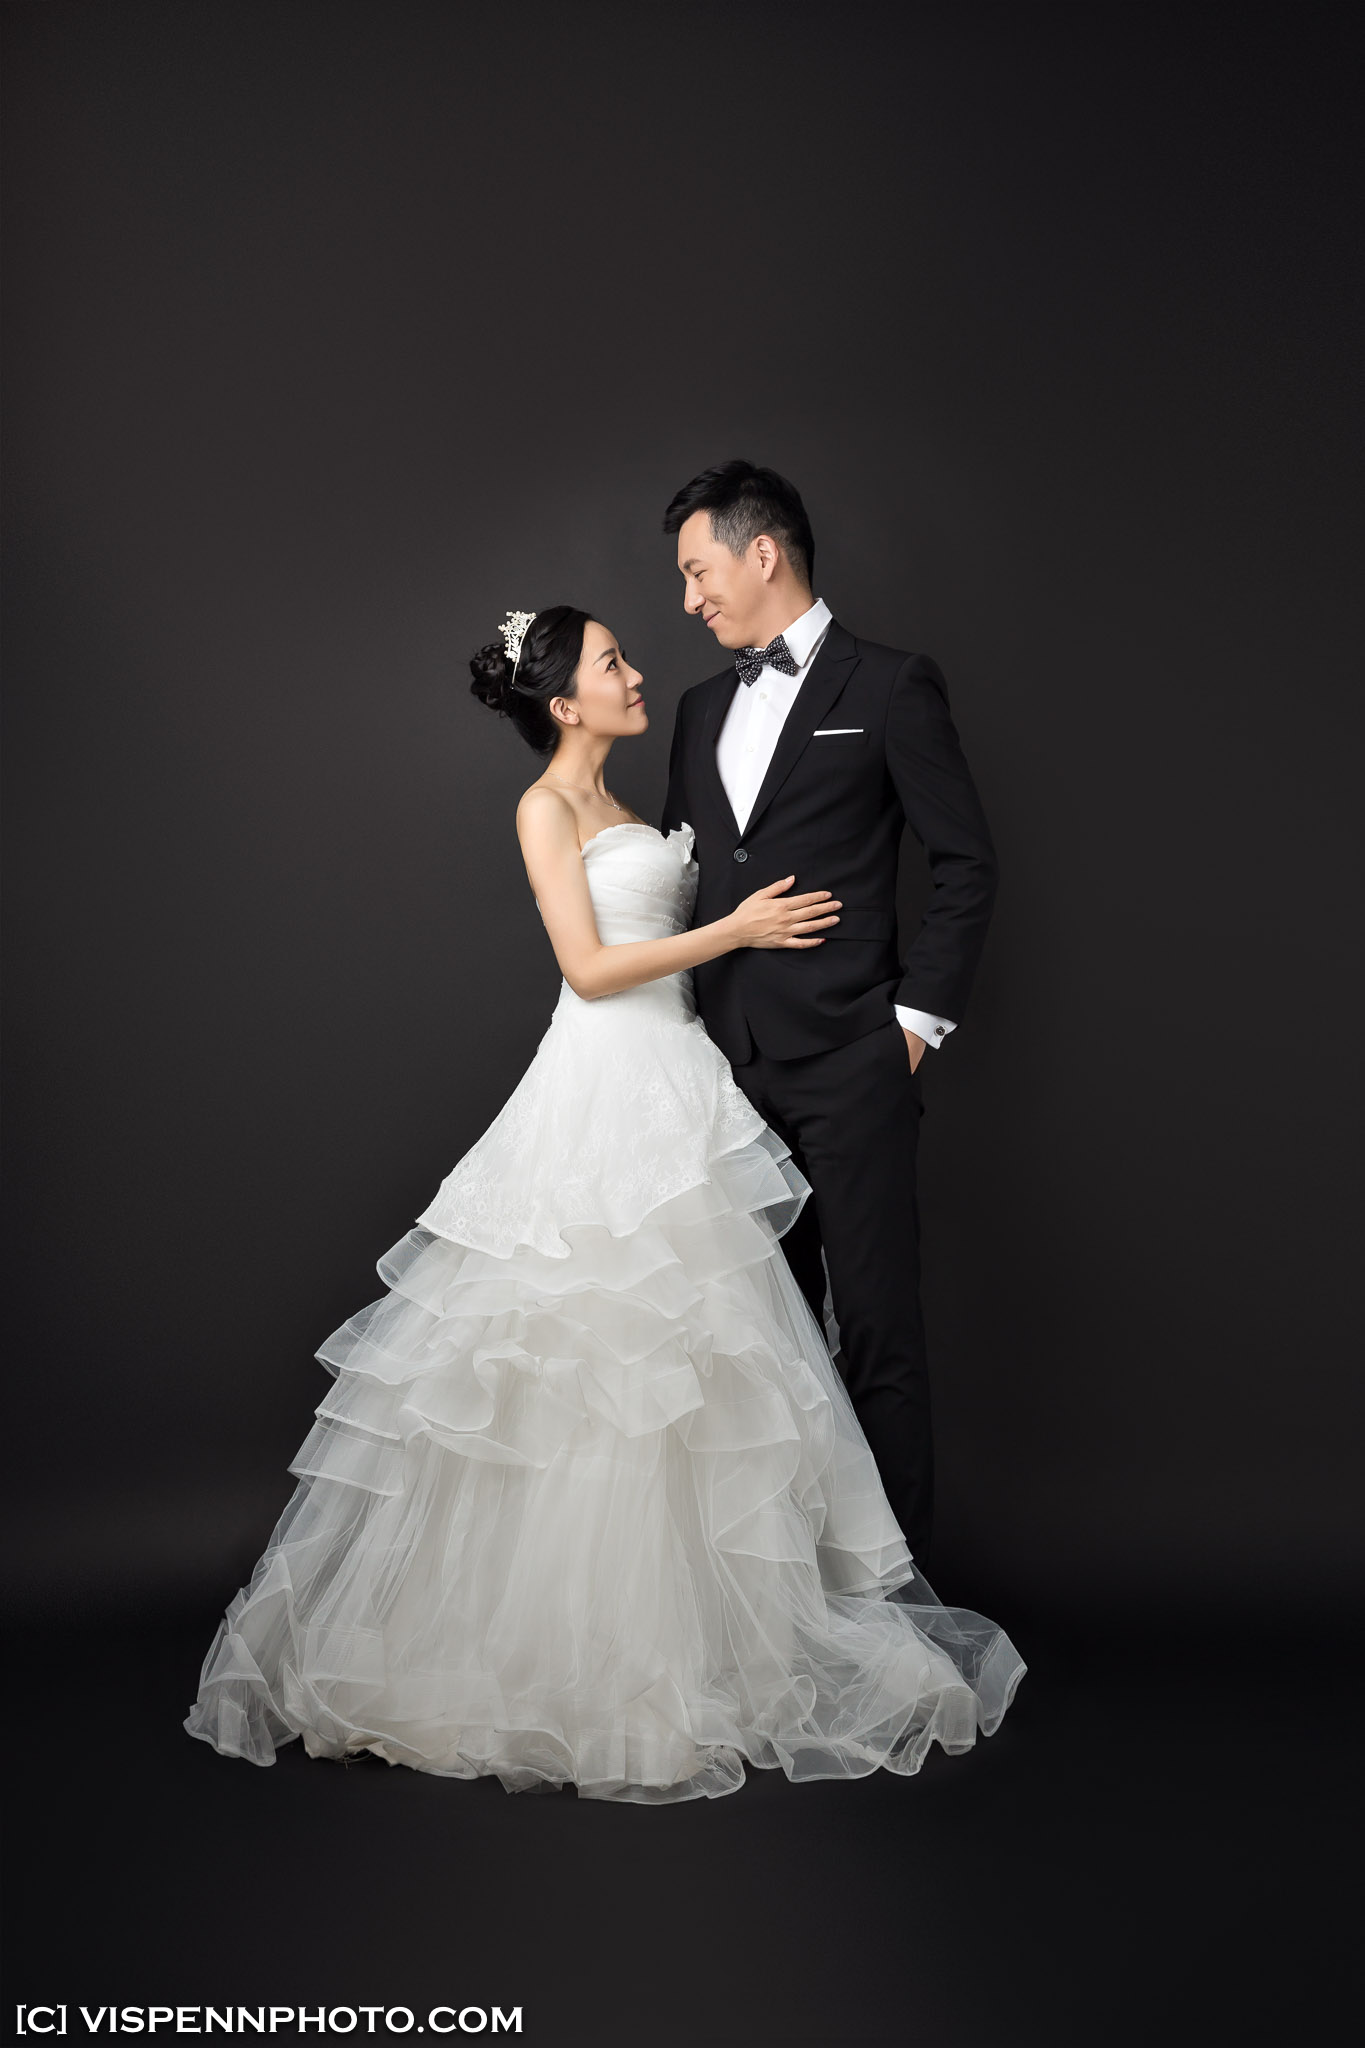 PRE WEDDING Photography Melbourne 5DB 0630